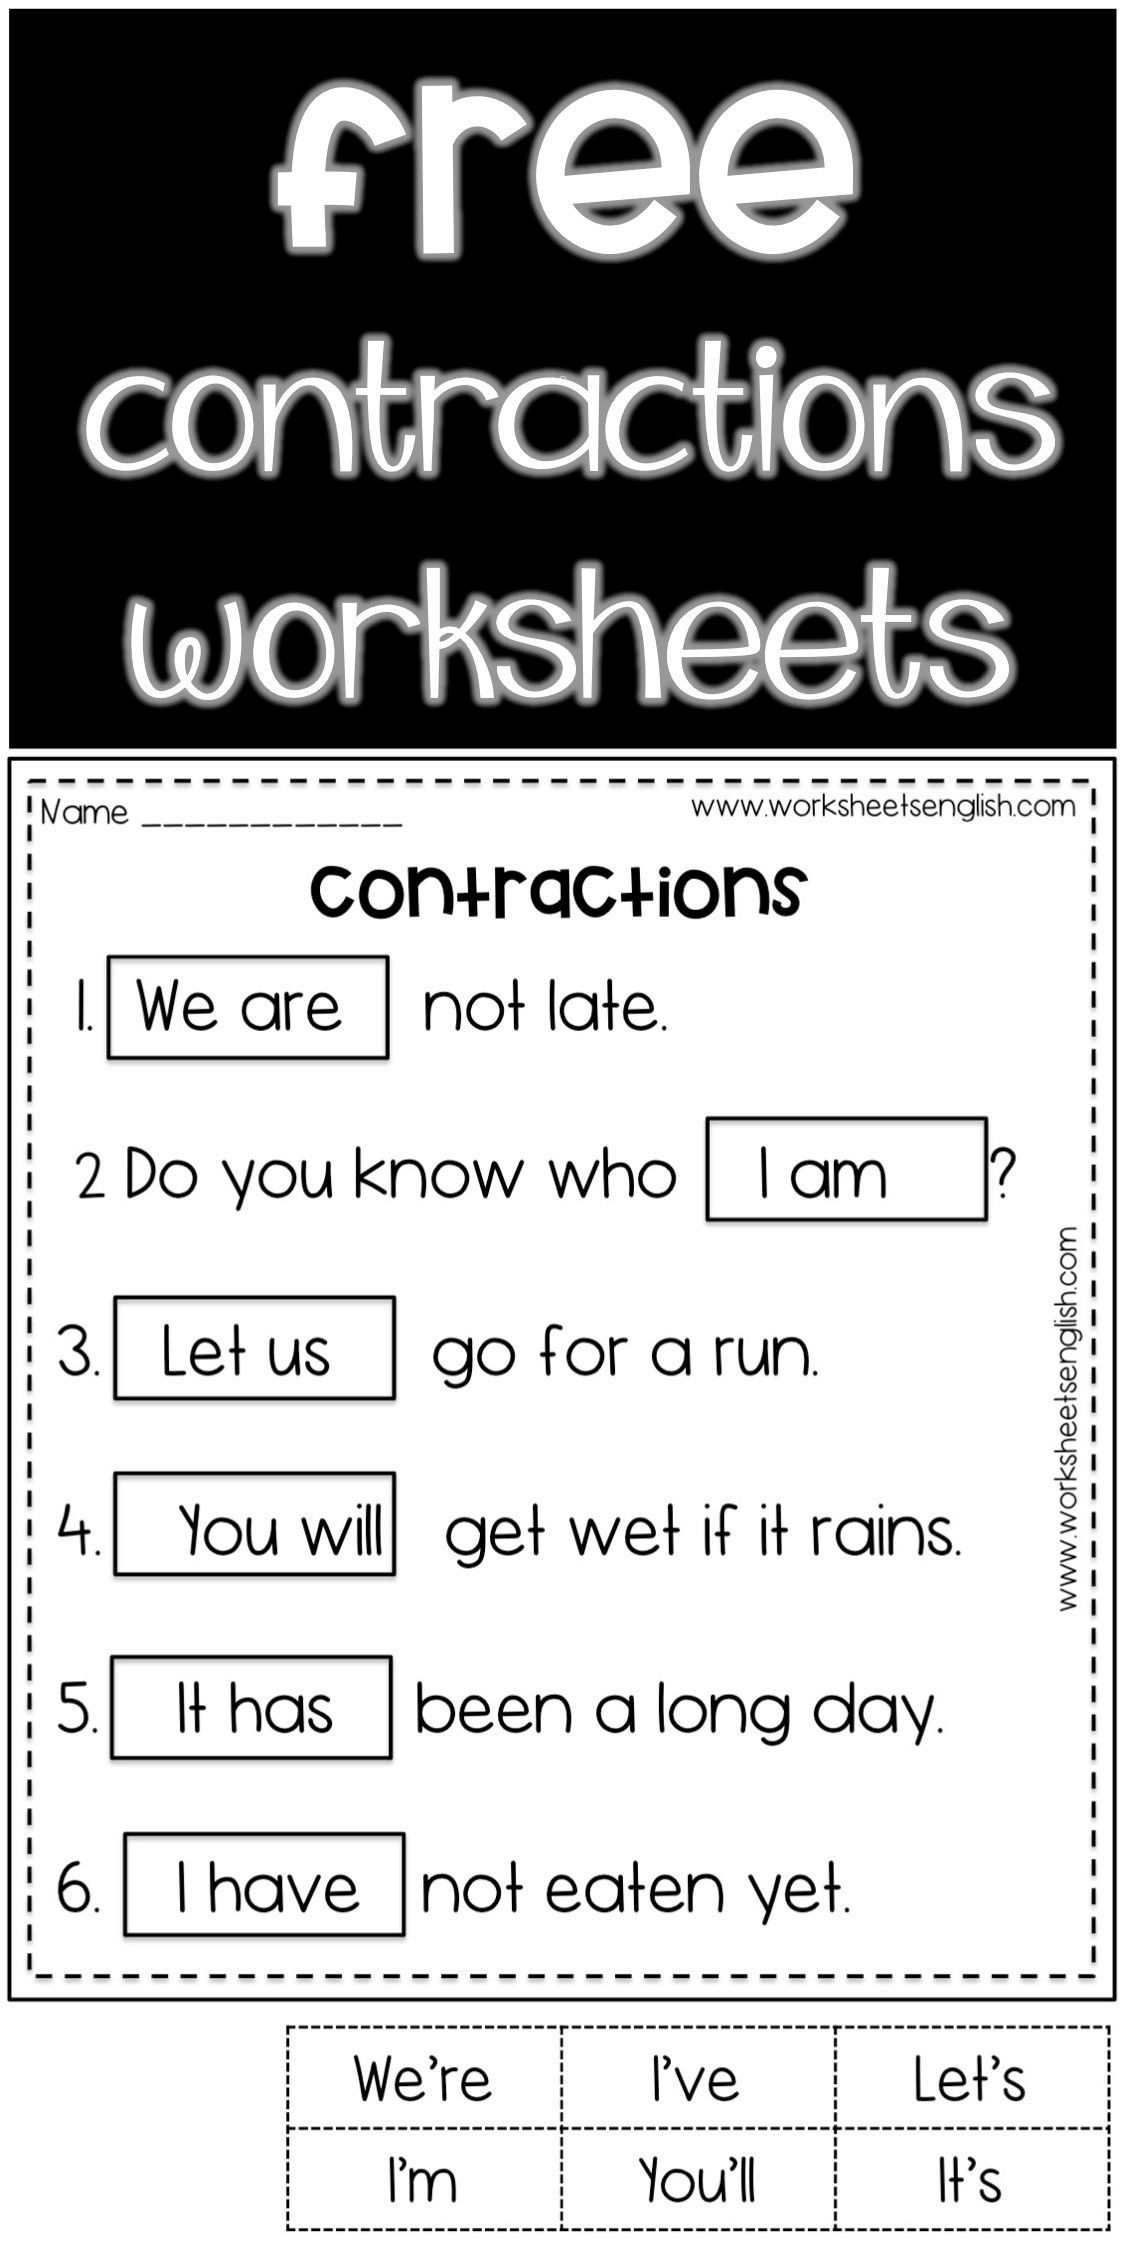 small resolution of contractions in english FREE www.worksheetsenglish.com in 2021   Contraction  worksheet